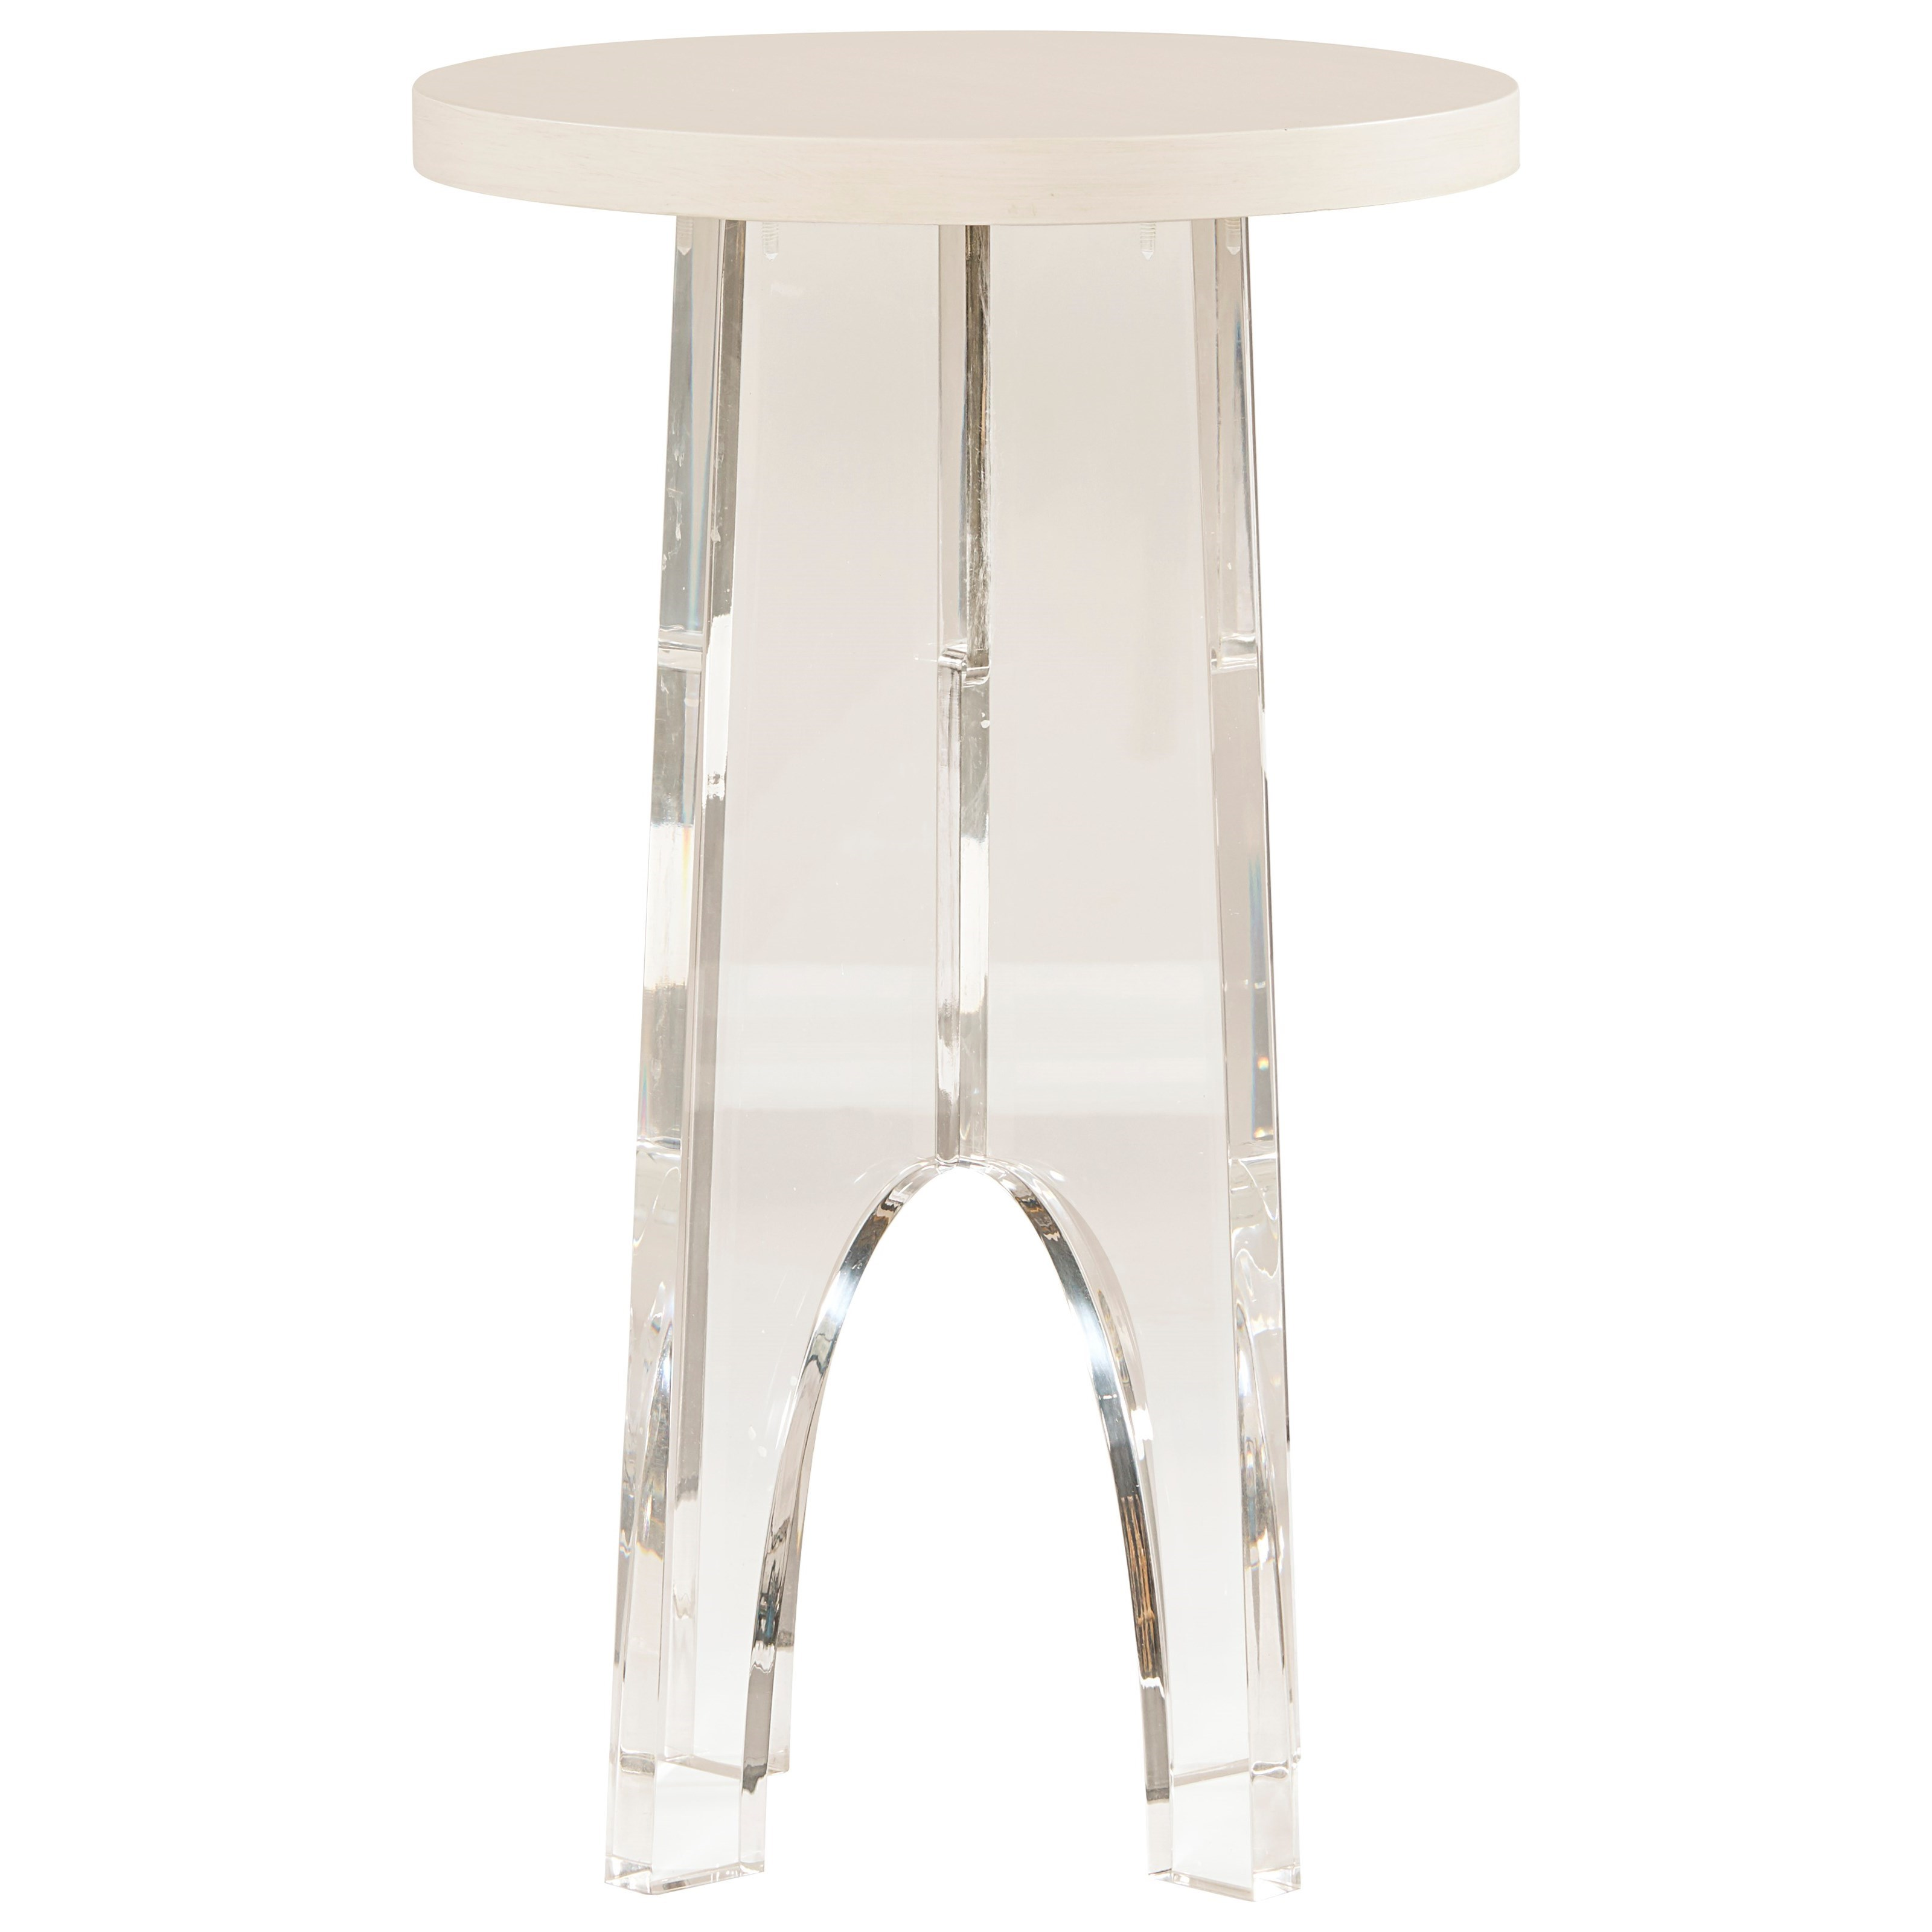 Coastal Living Home - Getaway Accent Table by Universal at Dream Home Interiors